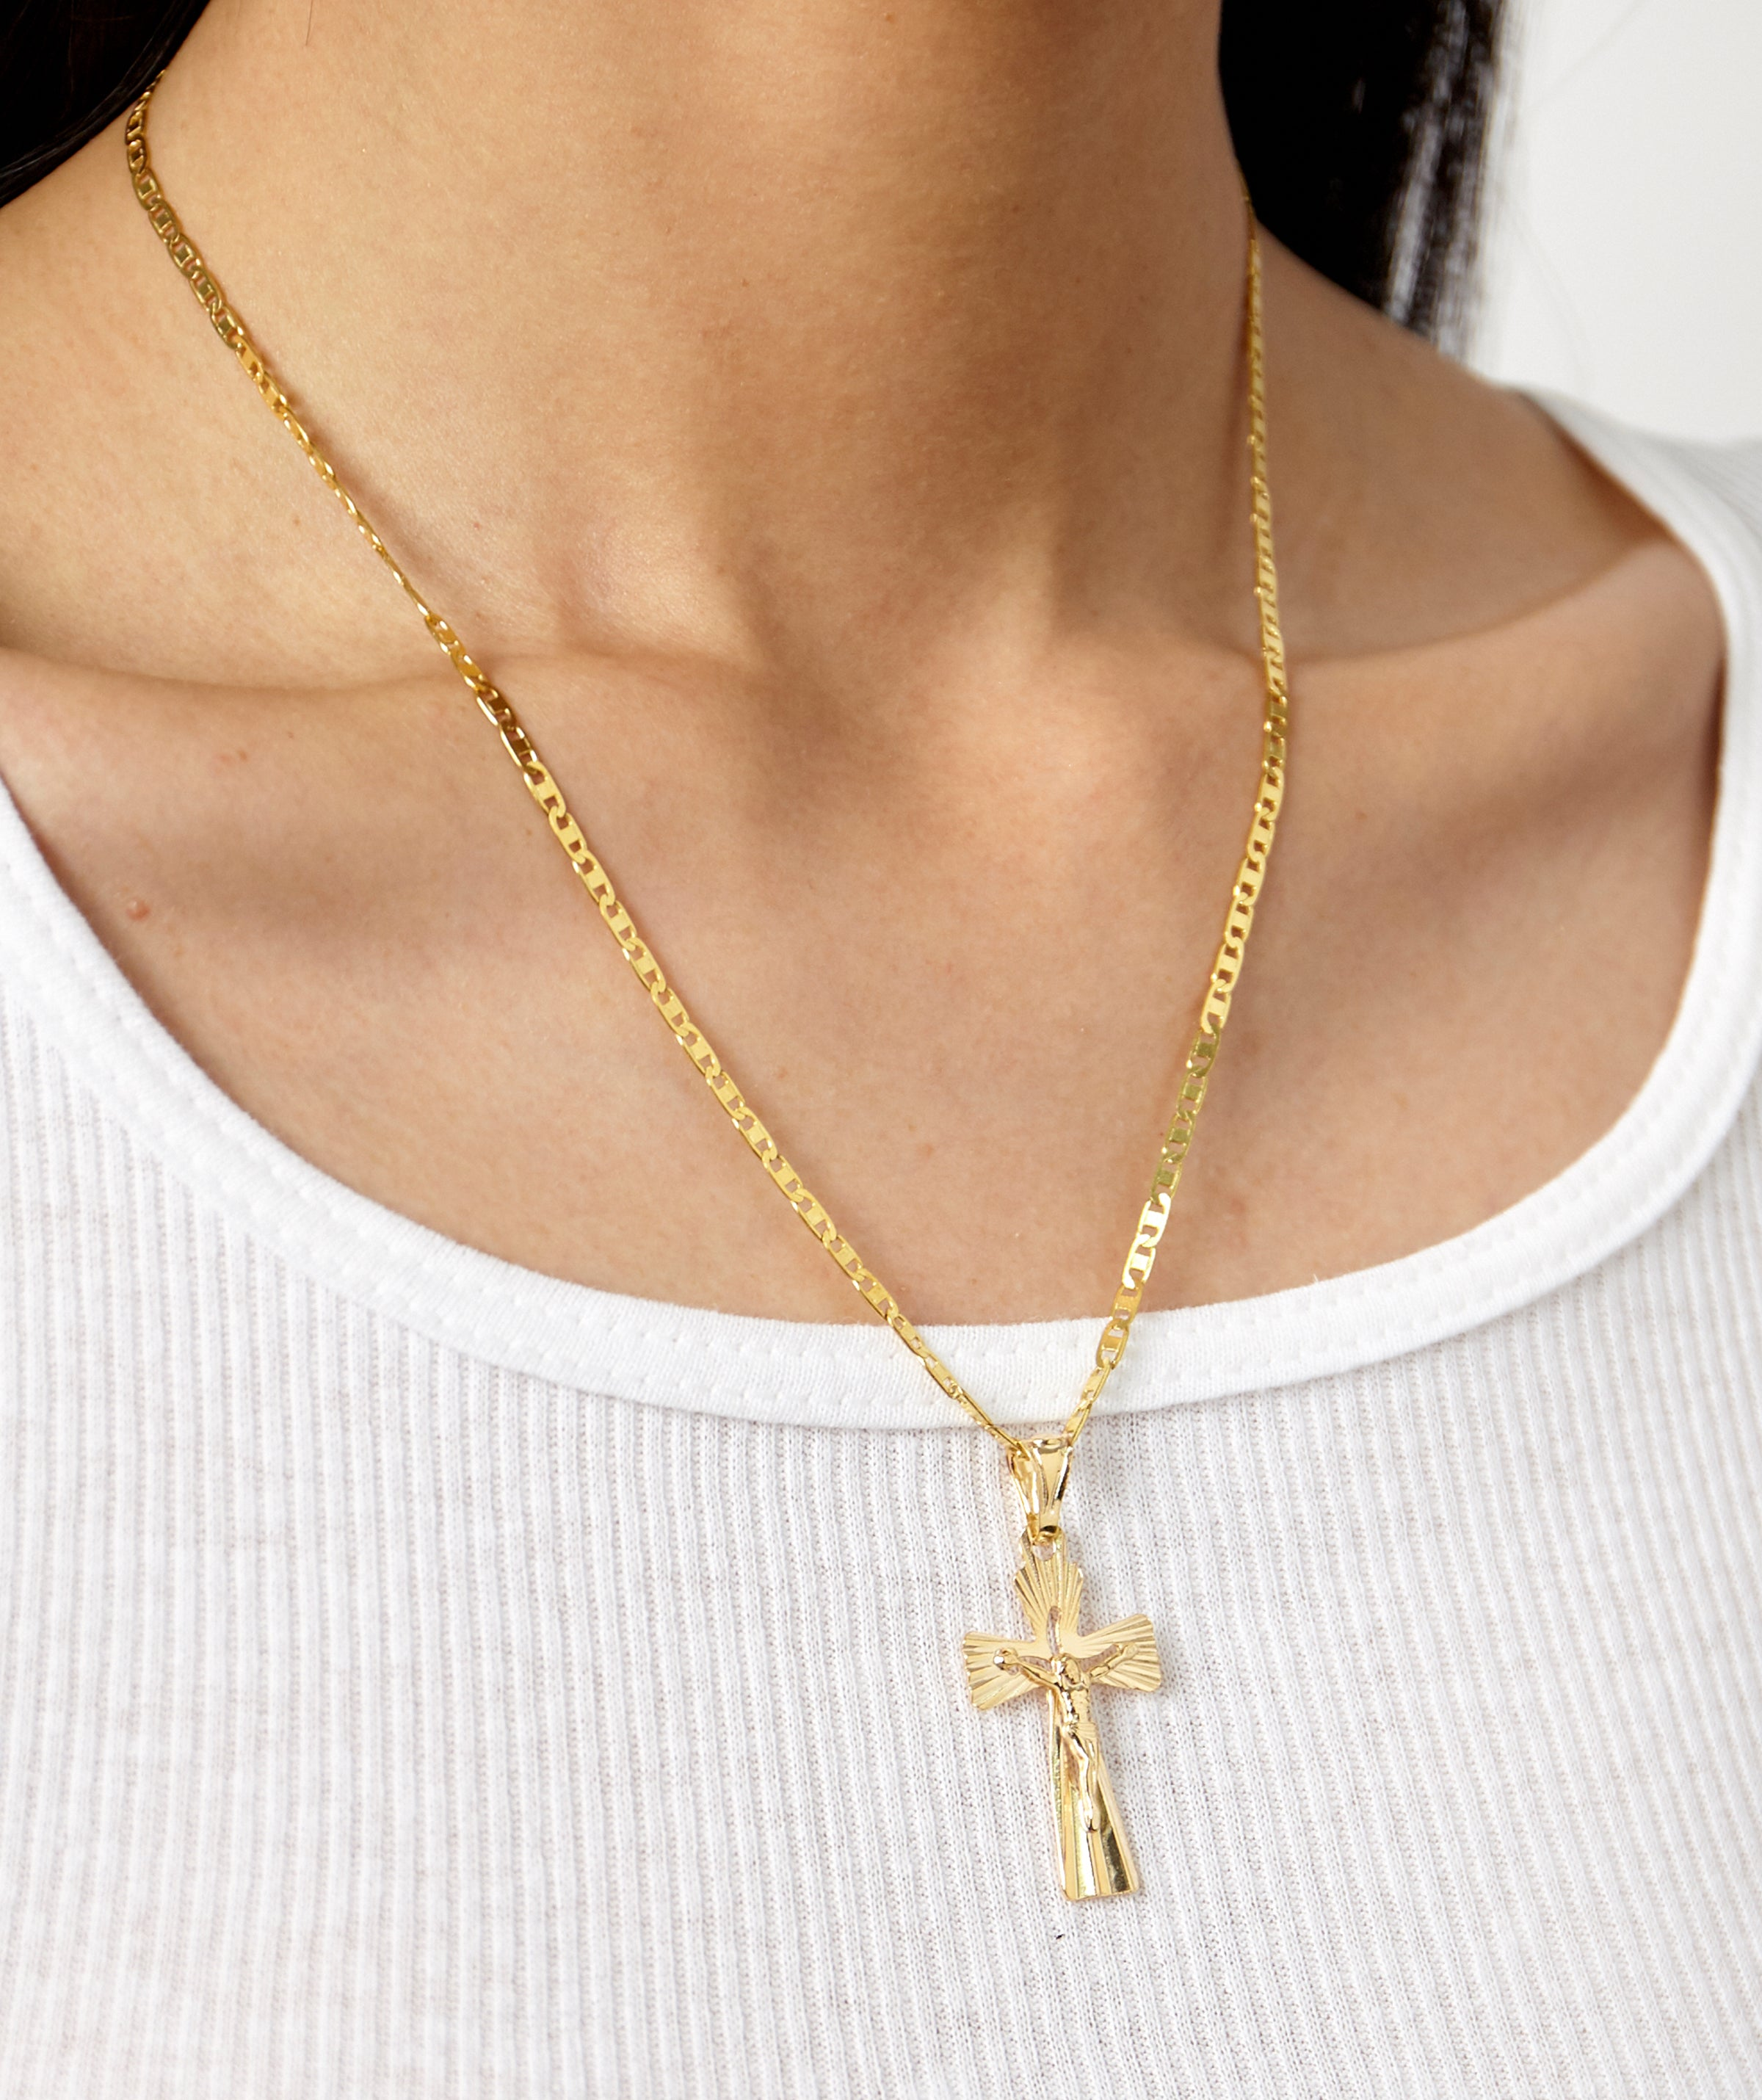 Notre dame cross necklace shami official notre dame cross necklace notre dame cross necklace aloadofball Choice Image